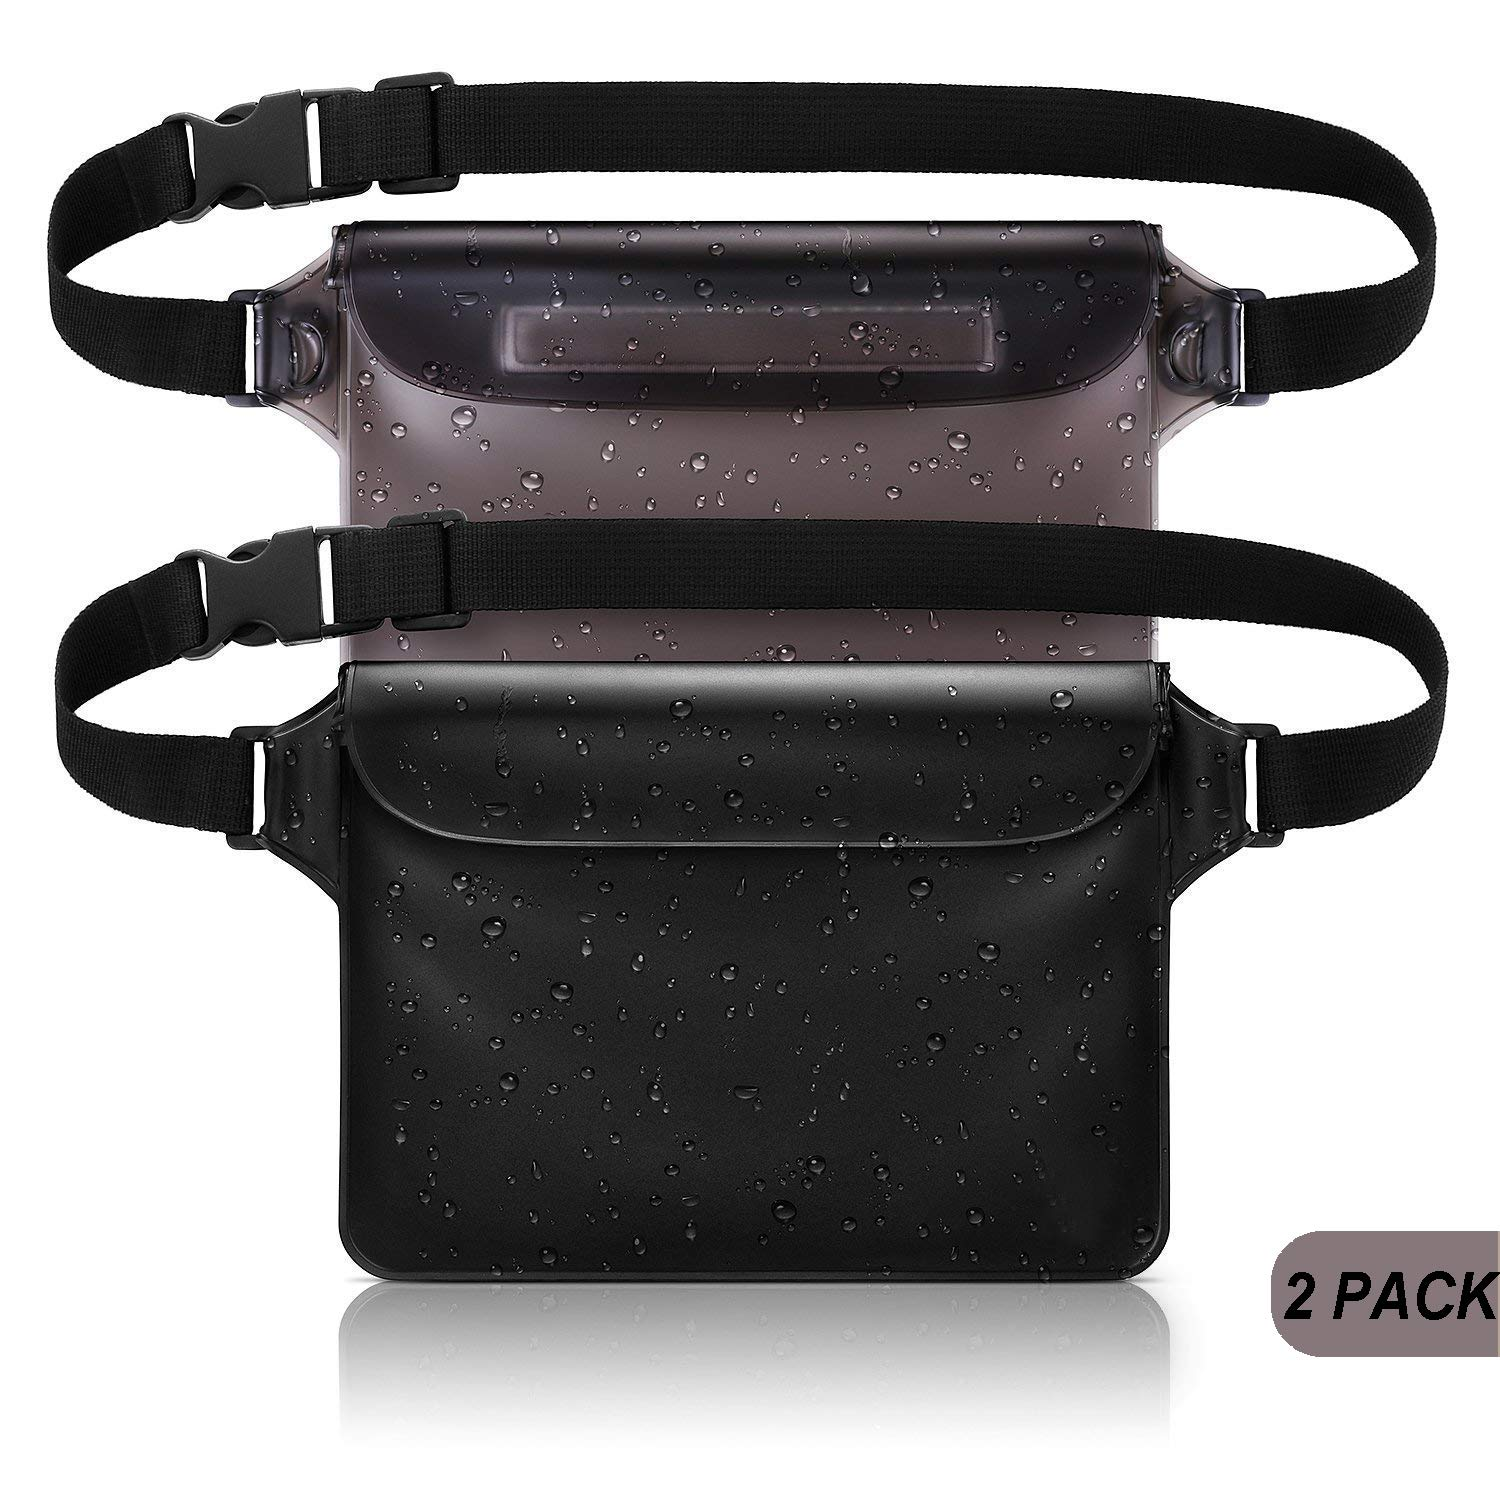 Waterproof Pouch Bag with Waist Strap, 2 Pack The Most Durable Super Lightweight Waterproof Phone Case/Wallet, Perfect for Kayaking Beach Pool Water Parks Boating Snorkeling Swimming and Fishing by CUZMAK